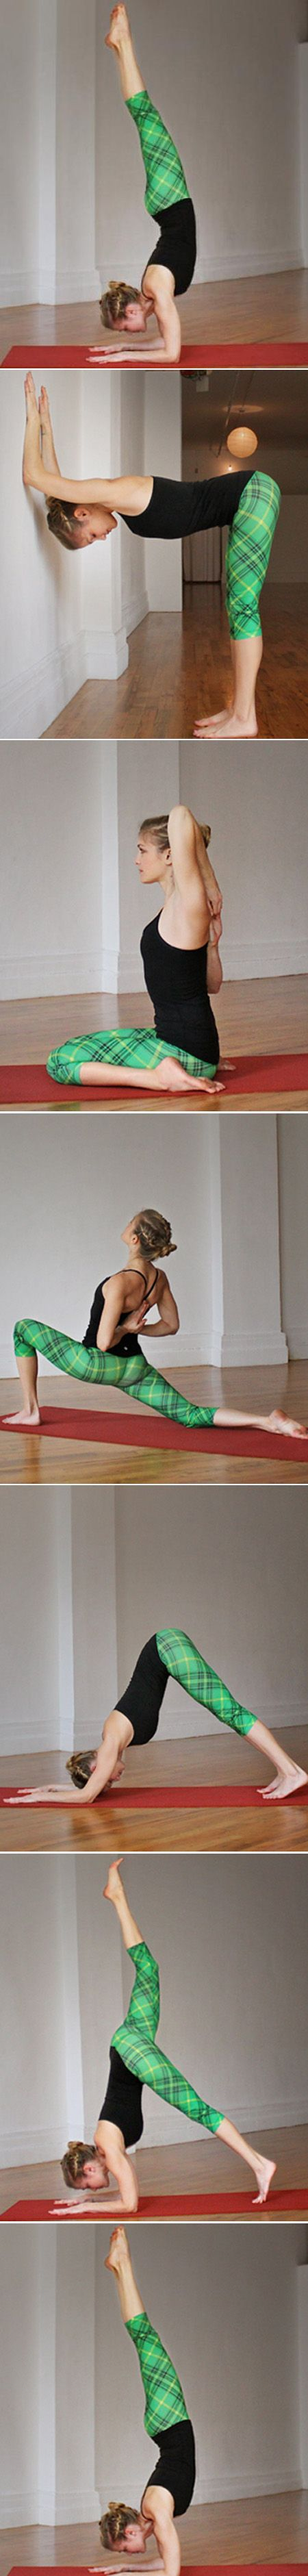 Step-By-Step Breakdown: Forearm Stand  #yoga   http://www.shape.com/blogs/working-it-out/step-step-breakdown-forearm-stand